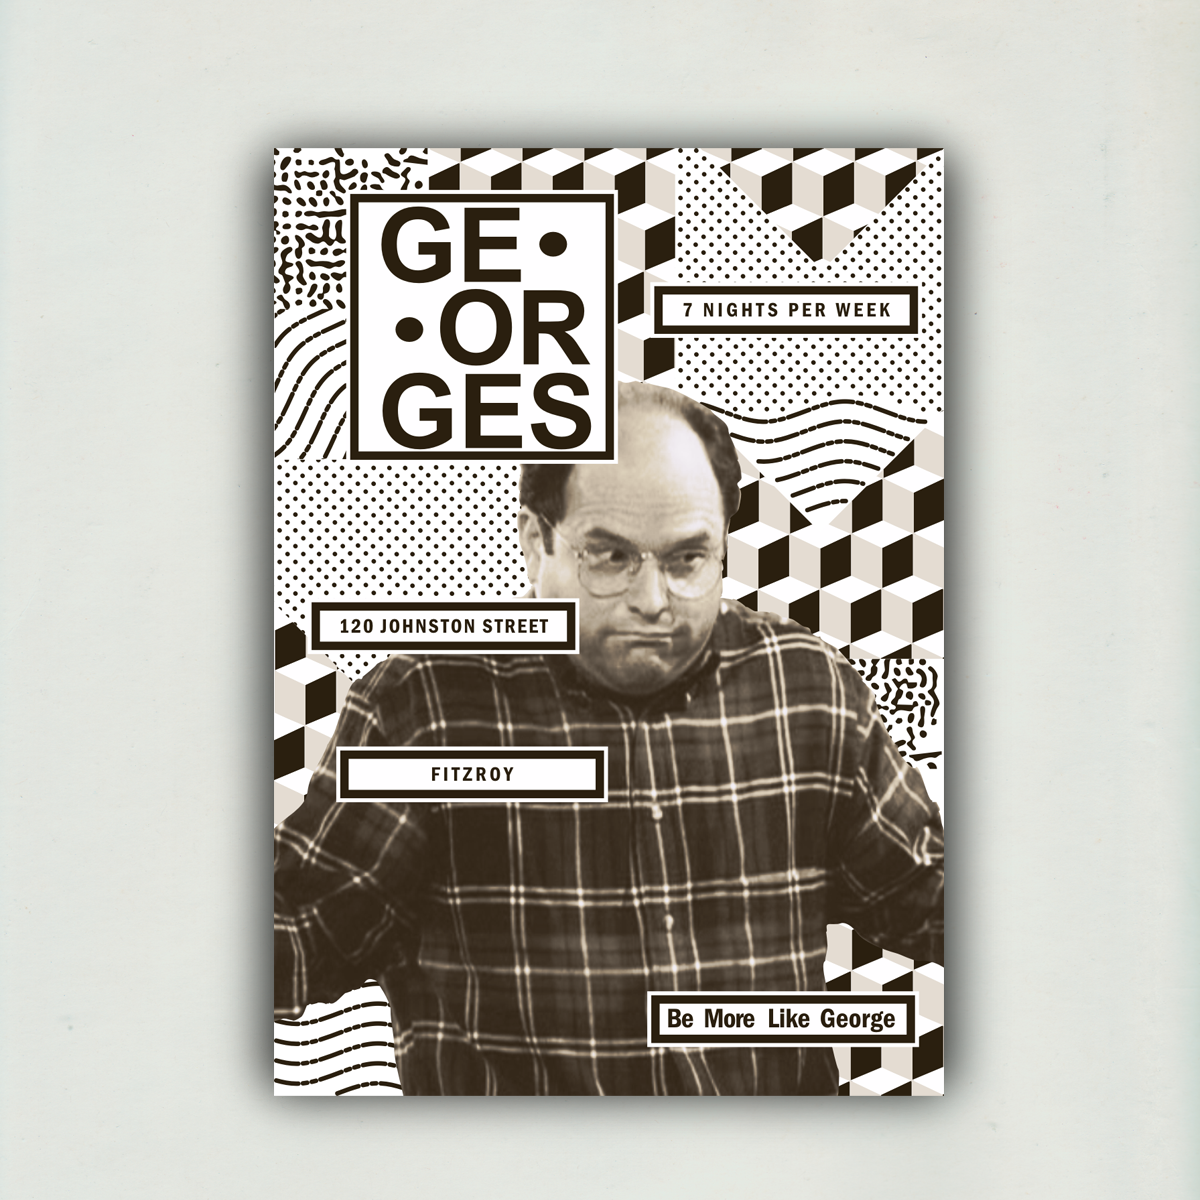 Georges Bar - A0 Poster - BNW - Upload 2